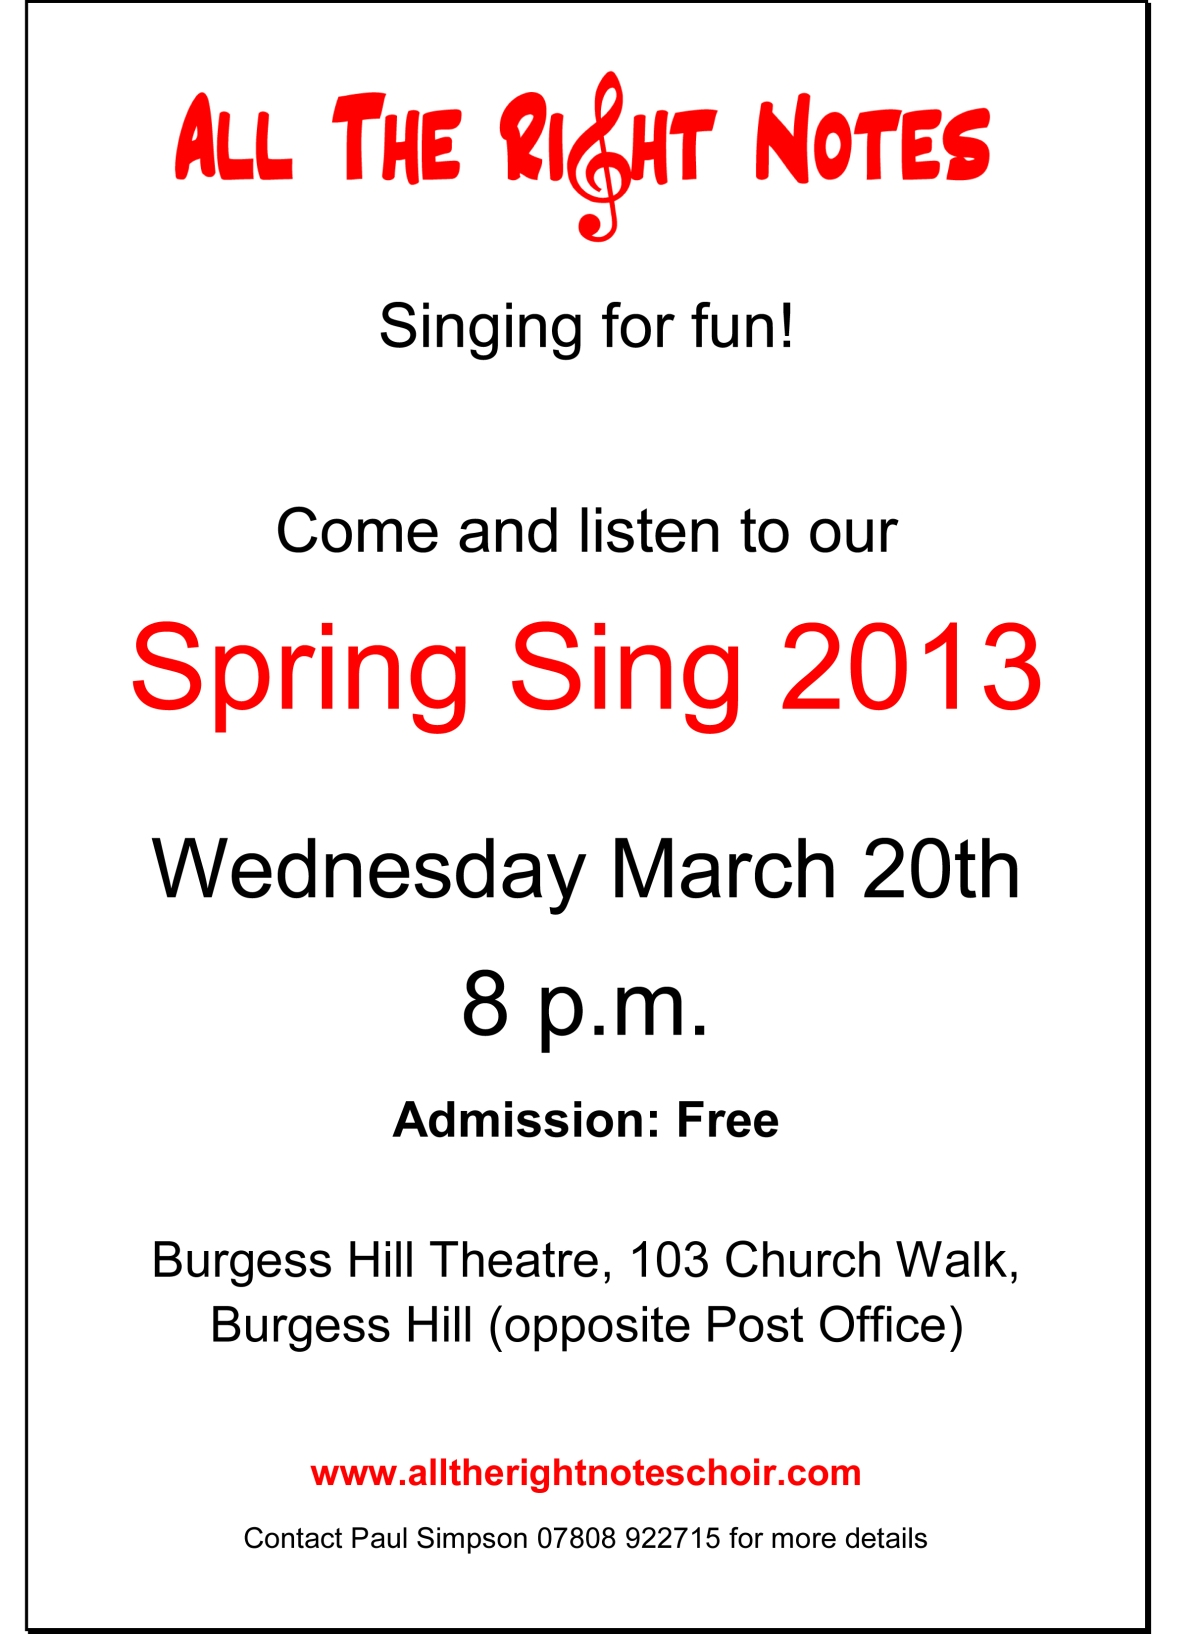 All the Right Notes Spring Sing!